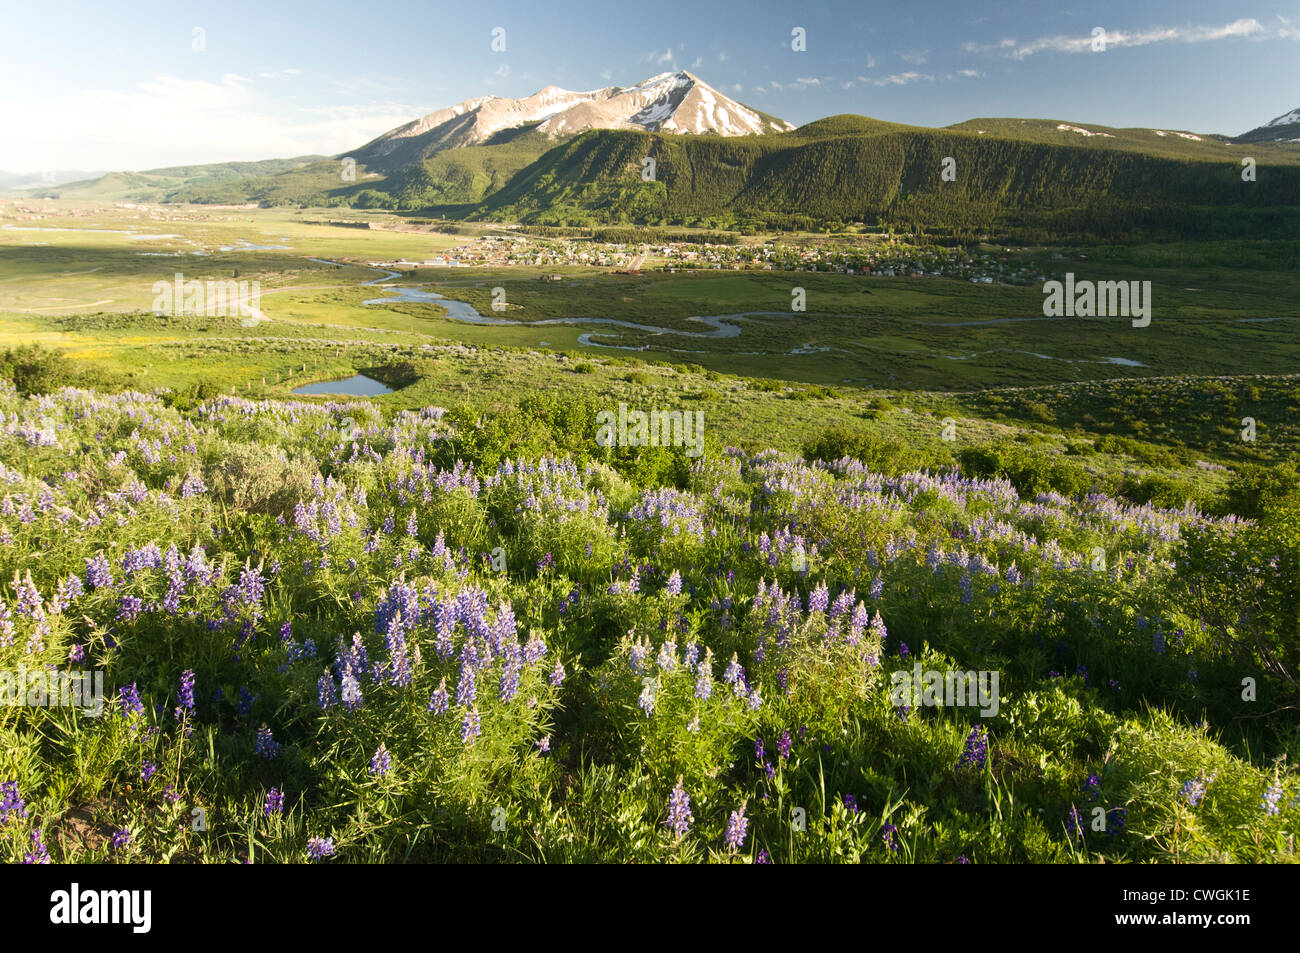 Lupine flowers and the town of Crested Butte, Colorado. - Stock Image